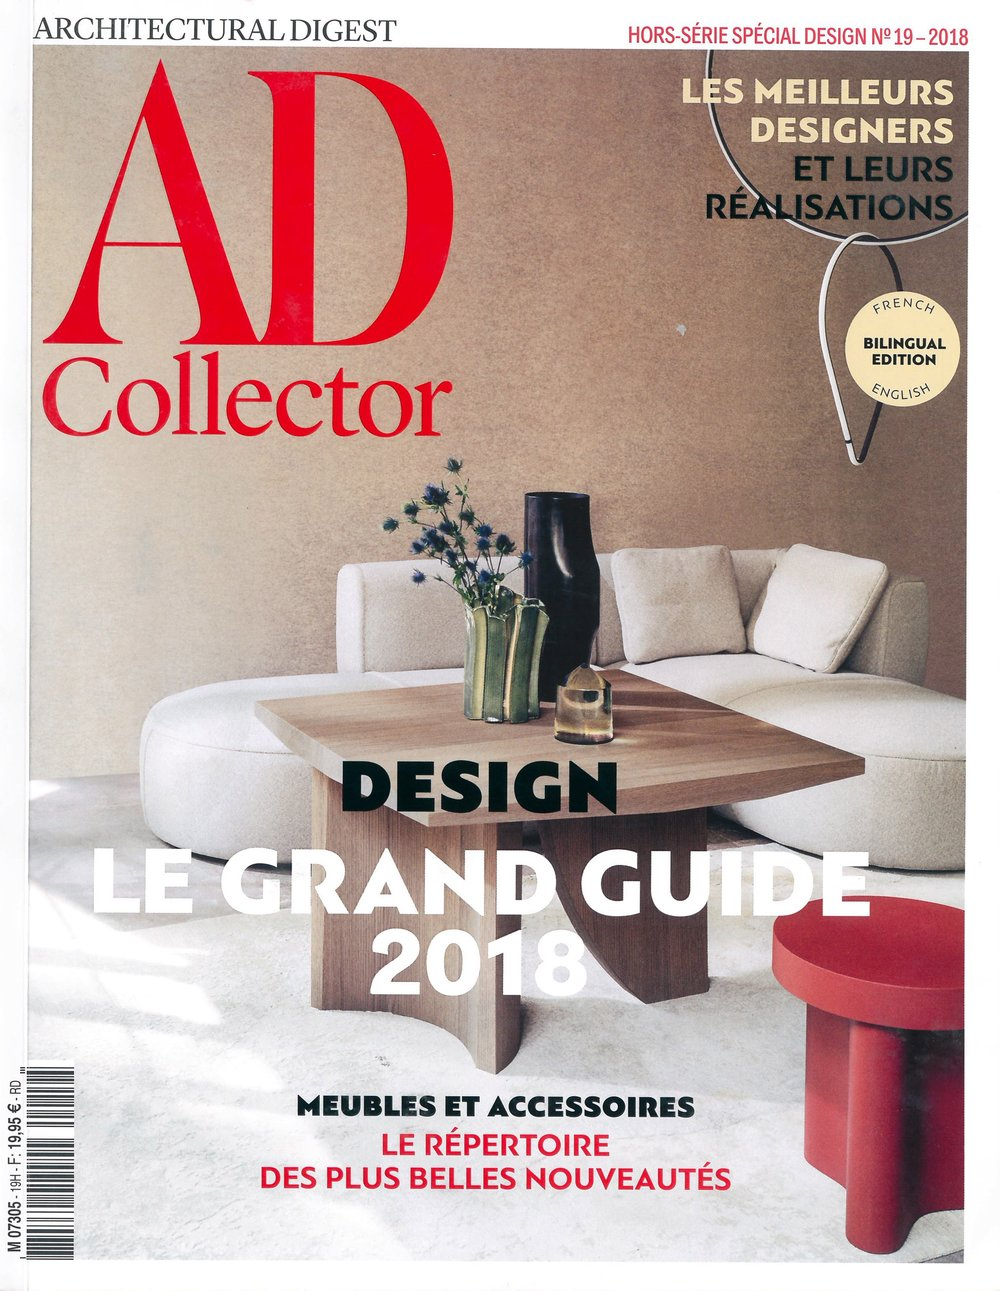 ad collector cover.jpg